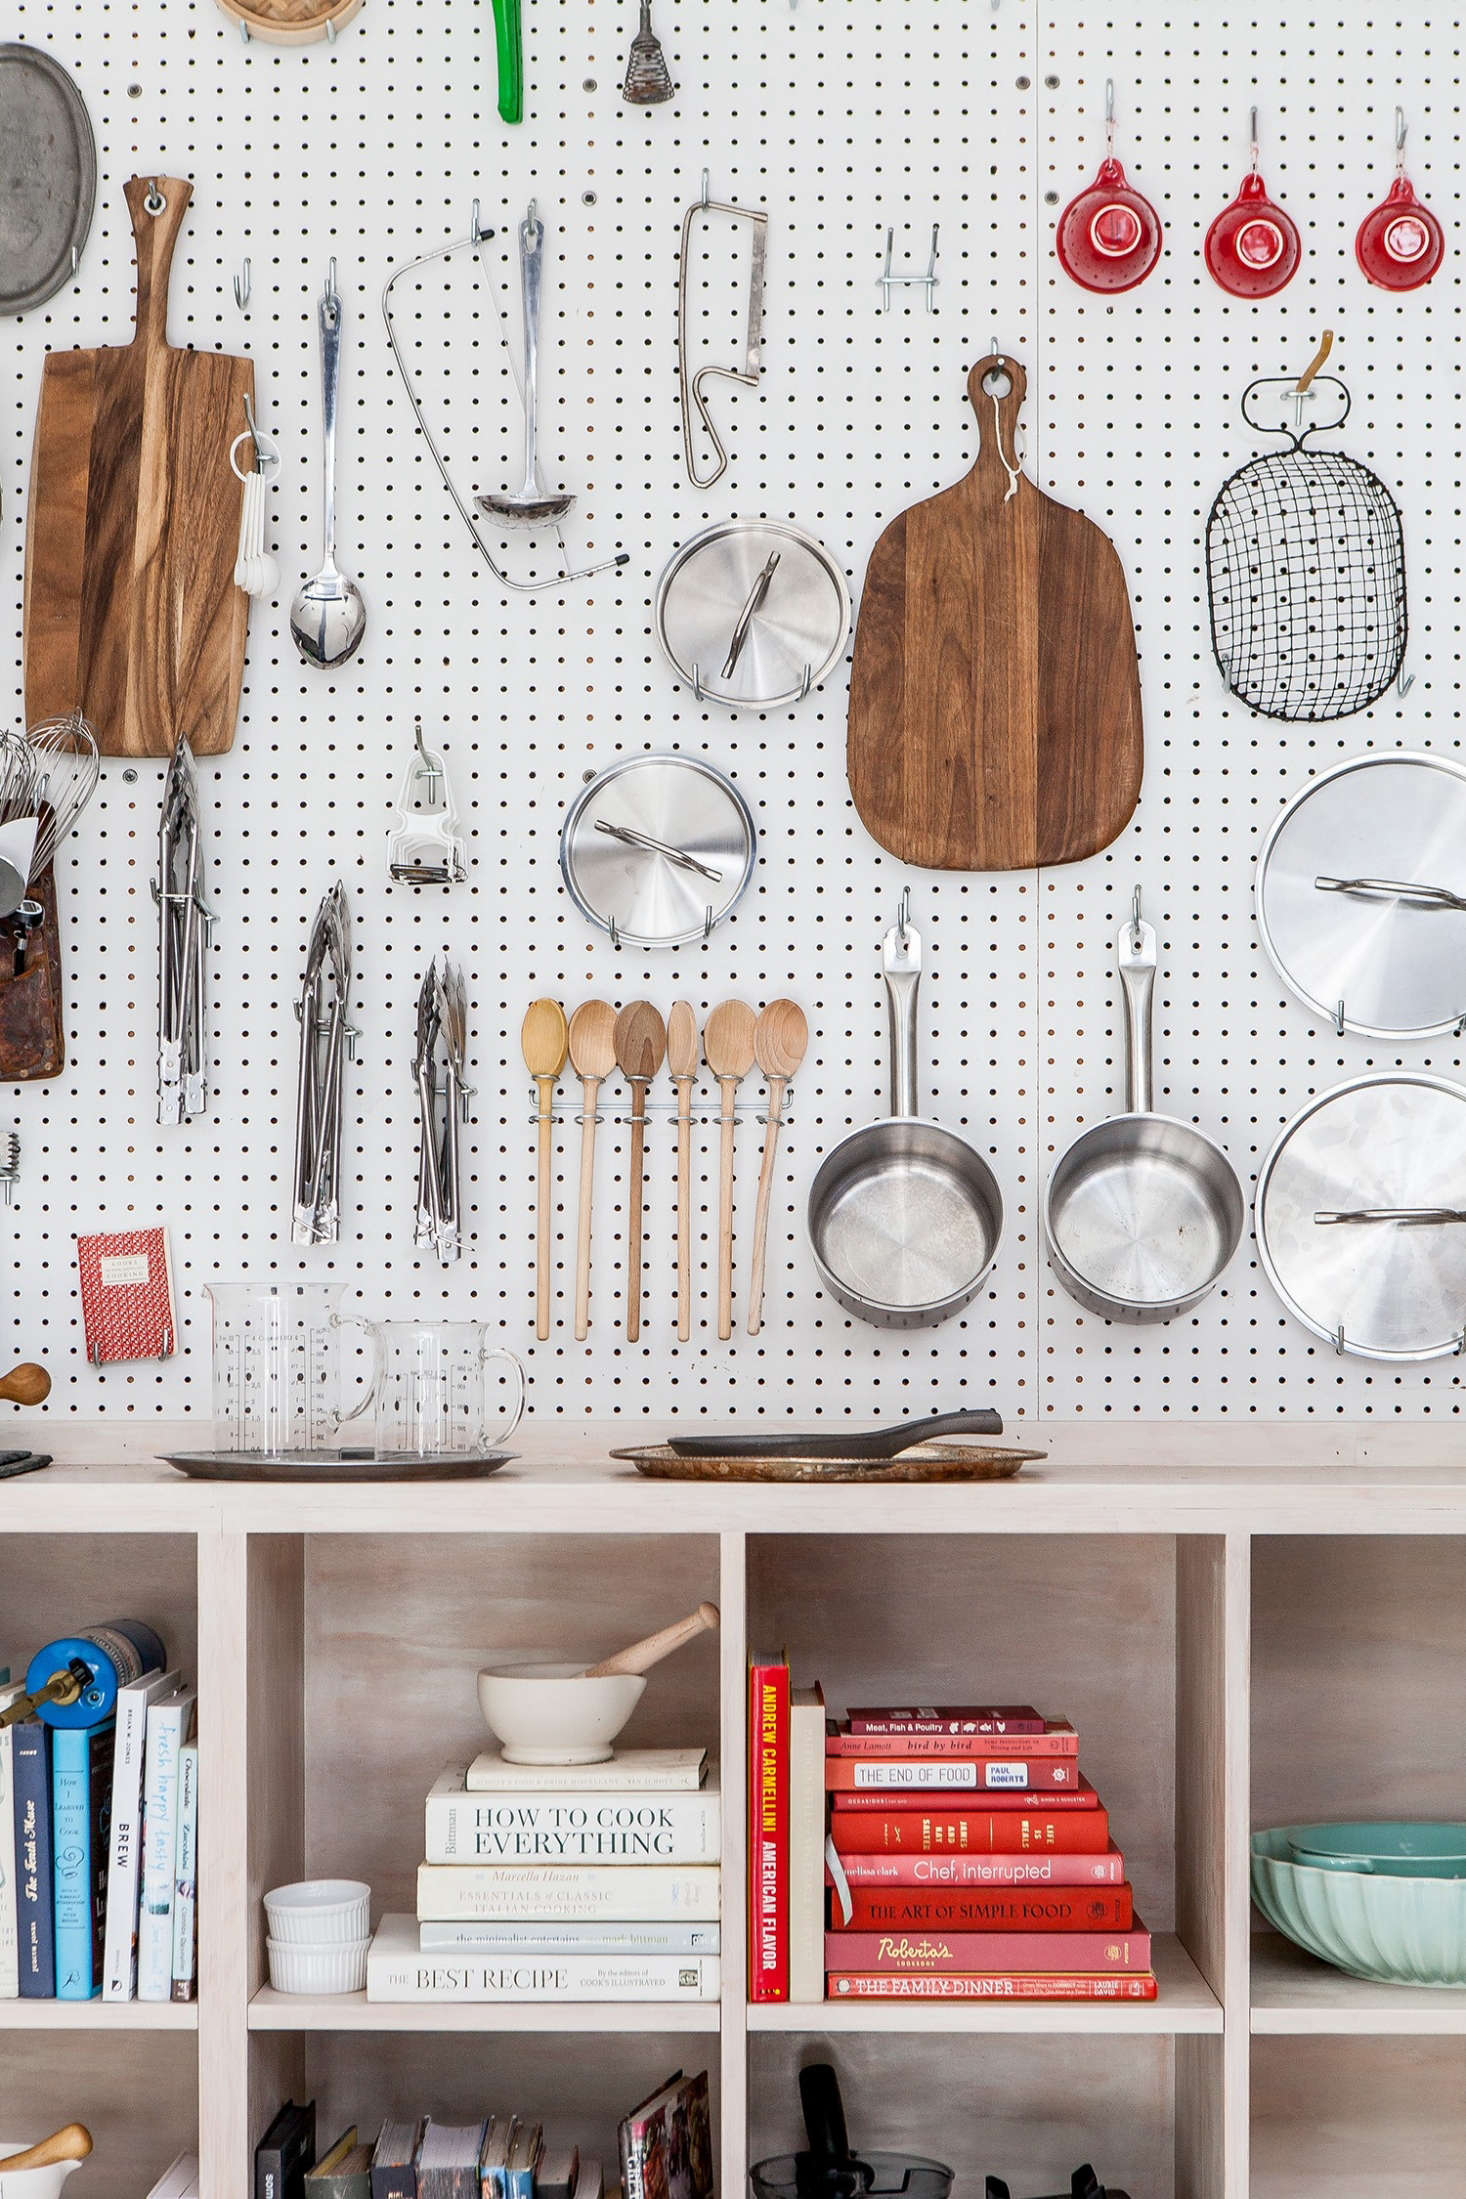 The satisfyingly compartmentalized pegboard at Cook Space in Brooklyn is home to wooden spoons that do double-duty as kitchen tools and decor. Photograph by Sean Santiago from The Effortlessly Cool Chef's Apartment: 9 Ideas to Steal from Cook Space in Brooklyn.